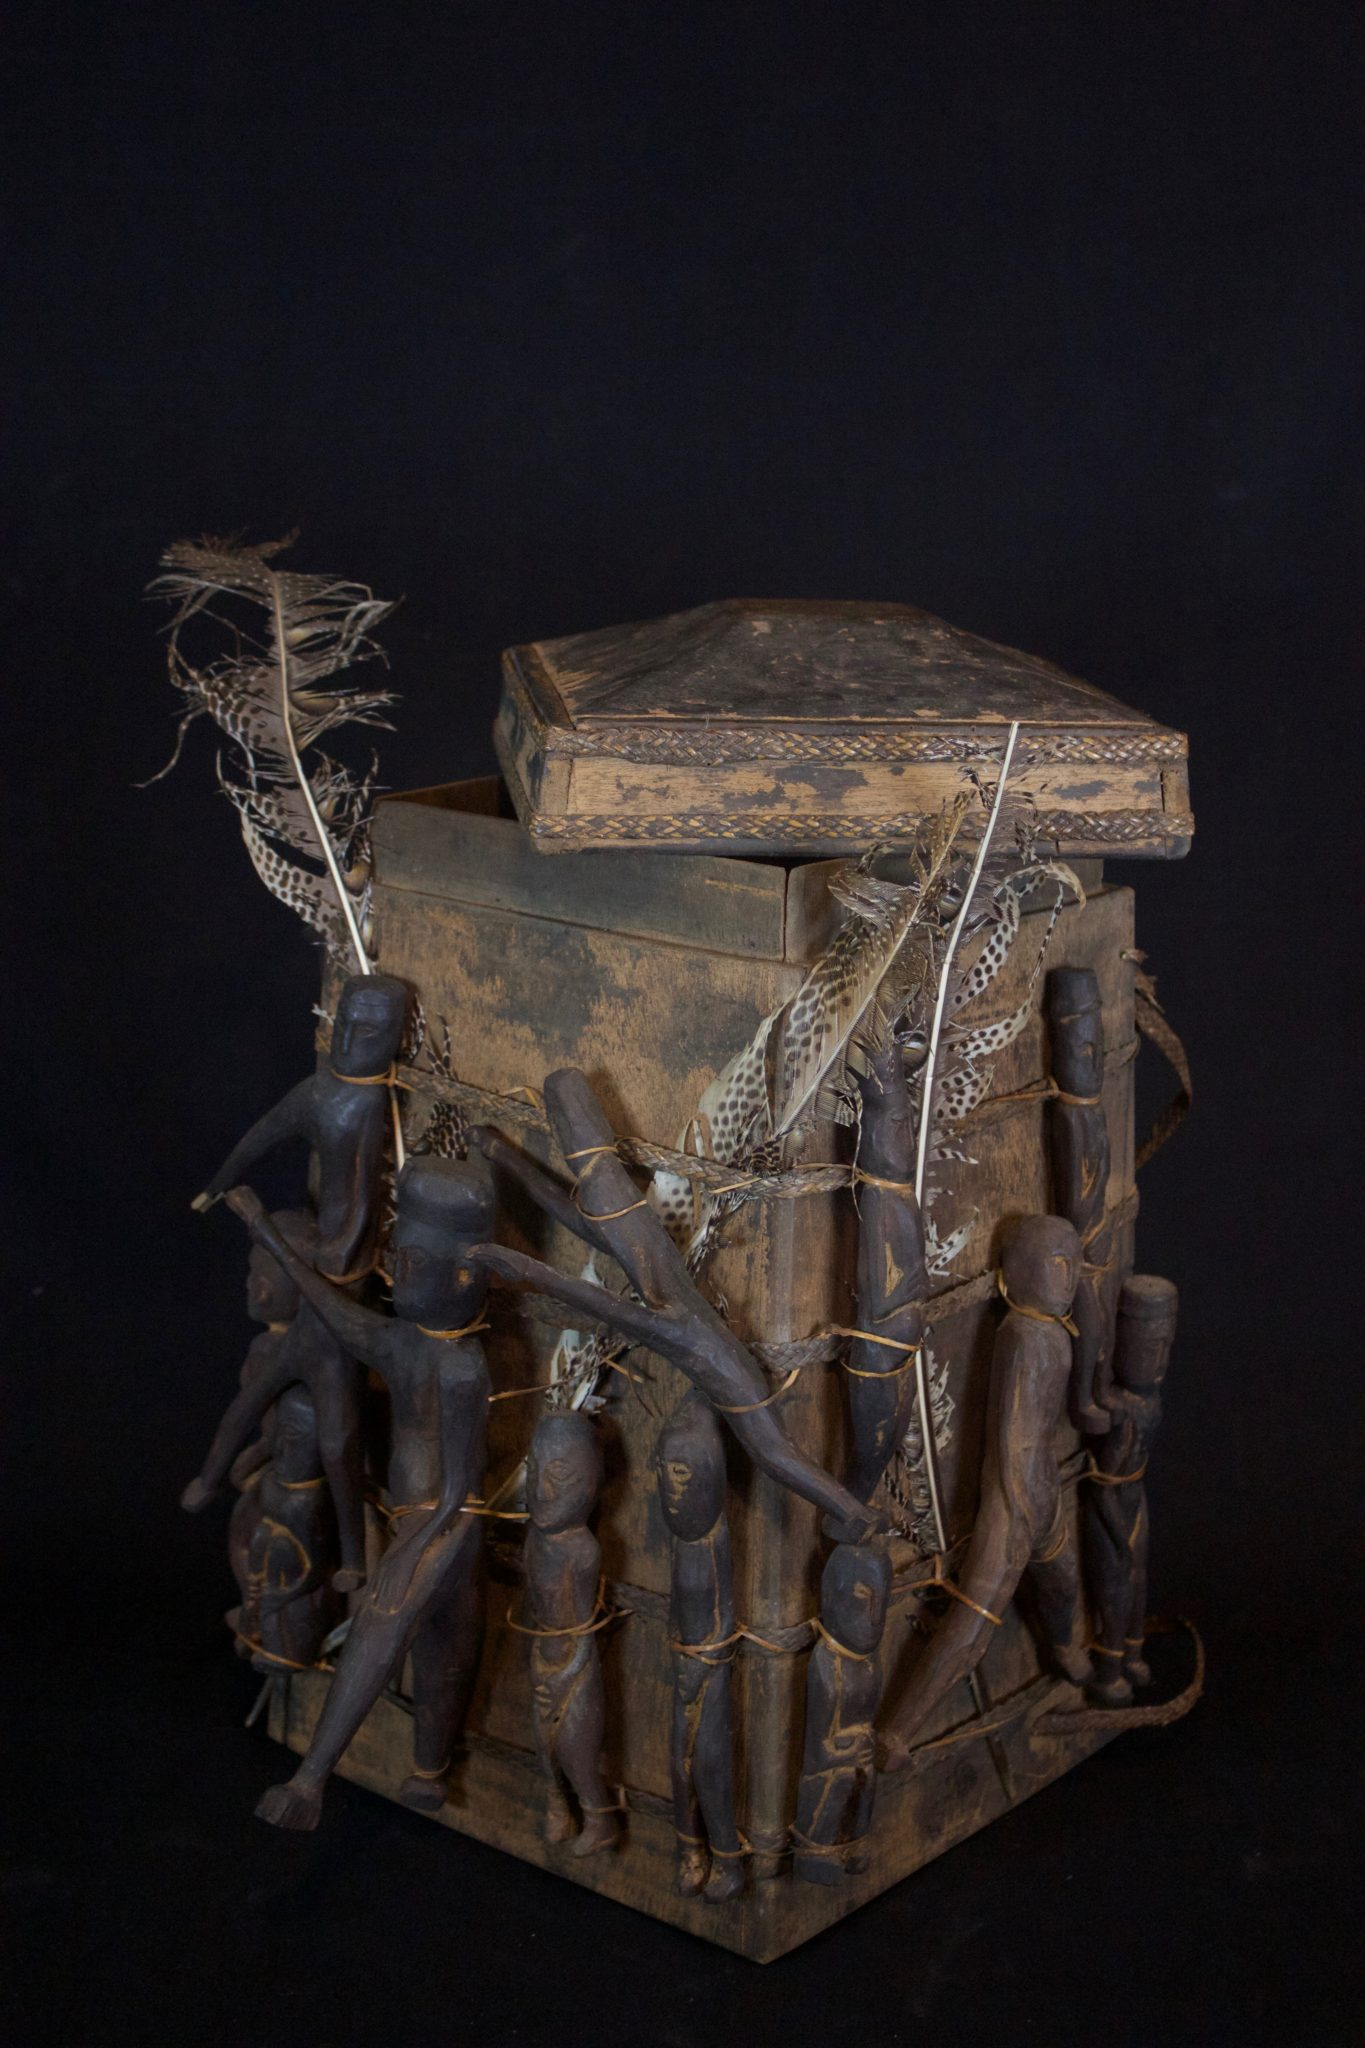 """'Lupong Manang' or Shaman's Medicine Carrier/Backpack with Healing Amulet/Fetish Figures (rare), East Kalimantan, Borneo, Indonesia, Dayak tribe, Late 19th to early 20th c, Wood pigmented with soot, raffia, feathers, porcupine quill Shaman made their own medicine kit backpacks to carry items for healing, protection and predictions such as special teeth, stones and other items. The healing amulet figures on the exterior correspond to illnesses and other conditions. 17"""" x 12 ½"""" x 15"""", $3,900. (see below image for detail image of shoulder straps)"""